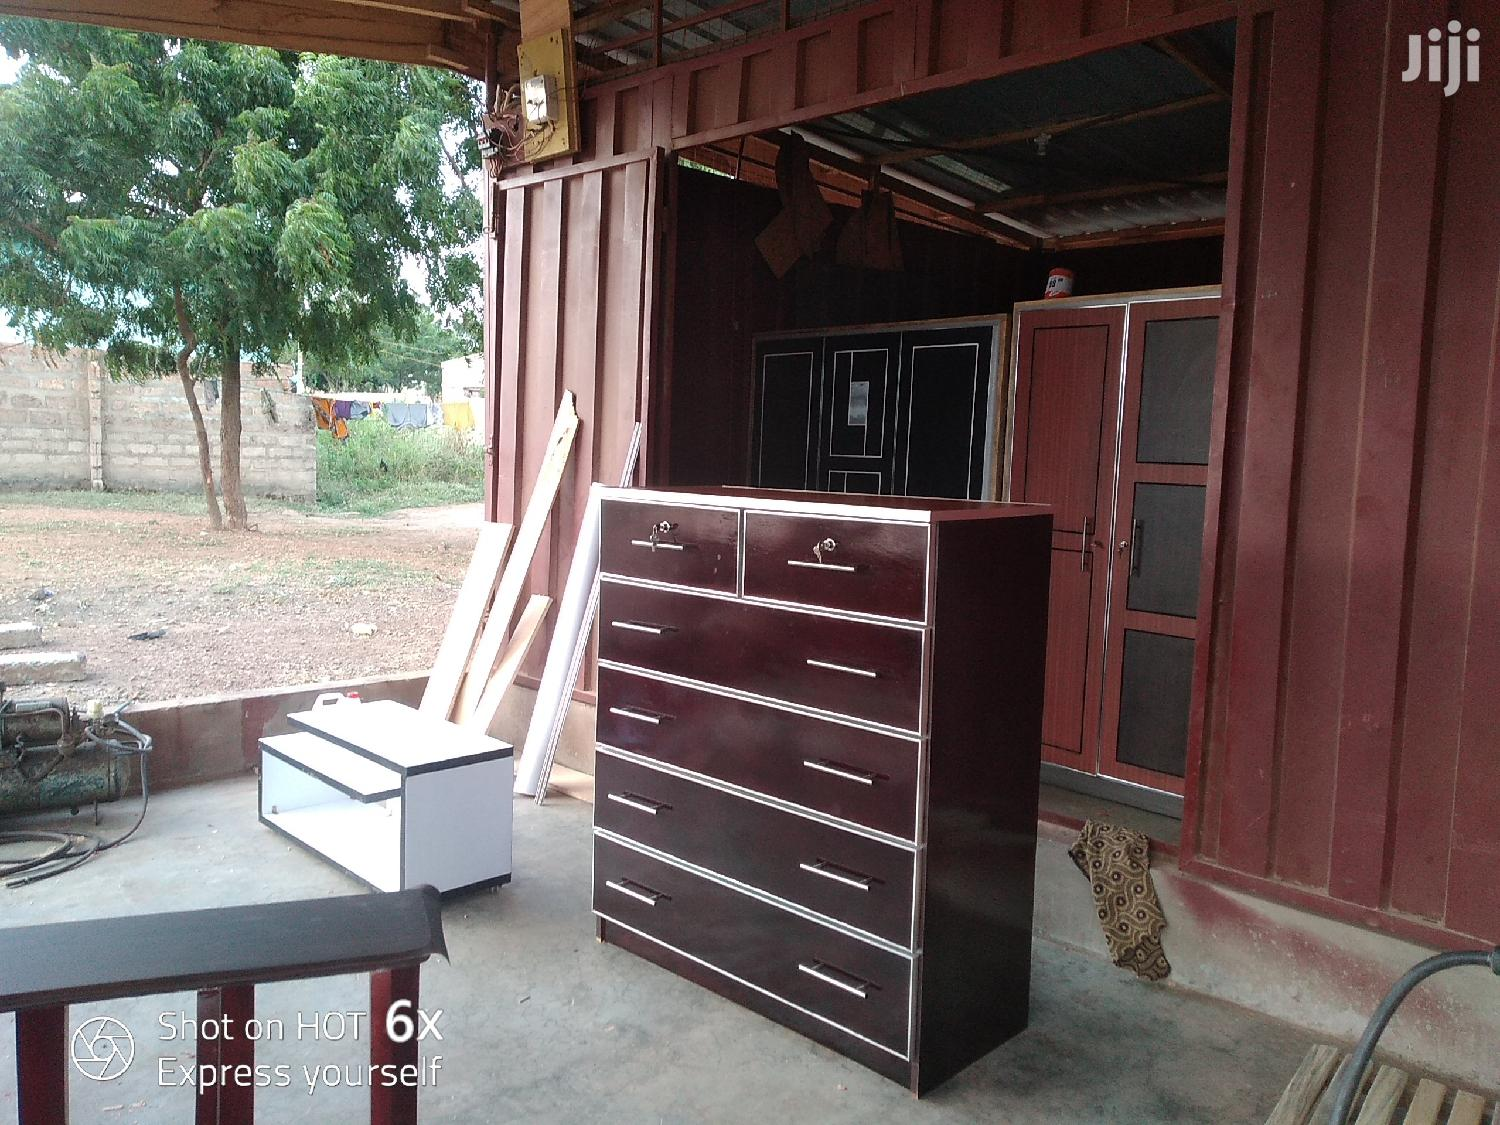 Classy Chest Of Drawers | Furniture for sale in Ashaiman Municipal, Greater Accra, Ghana